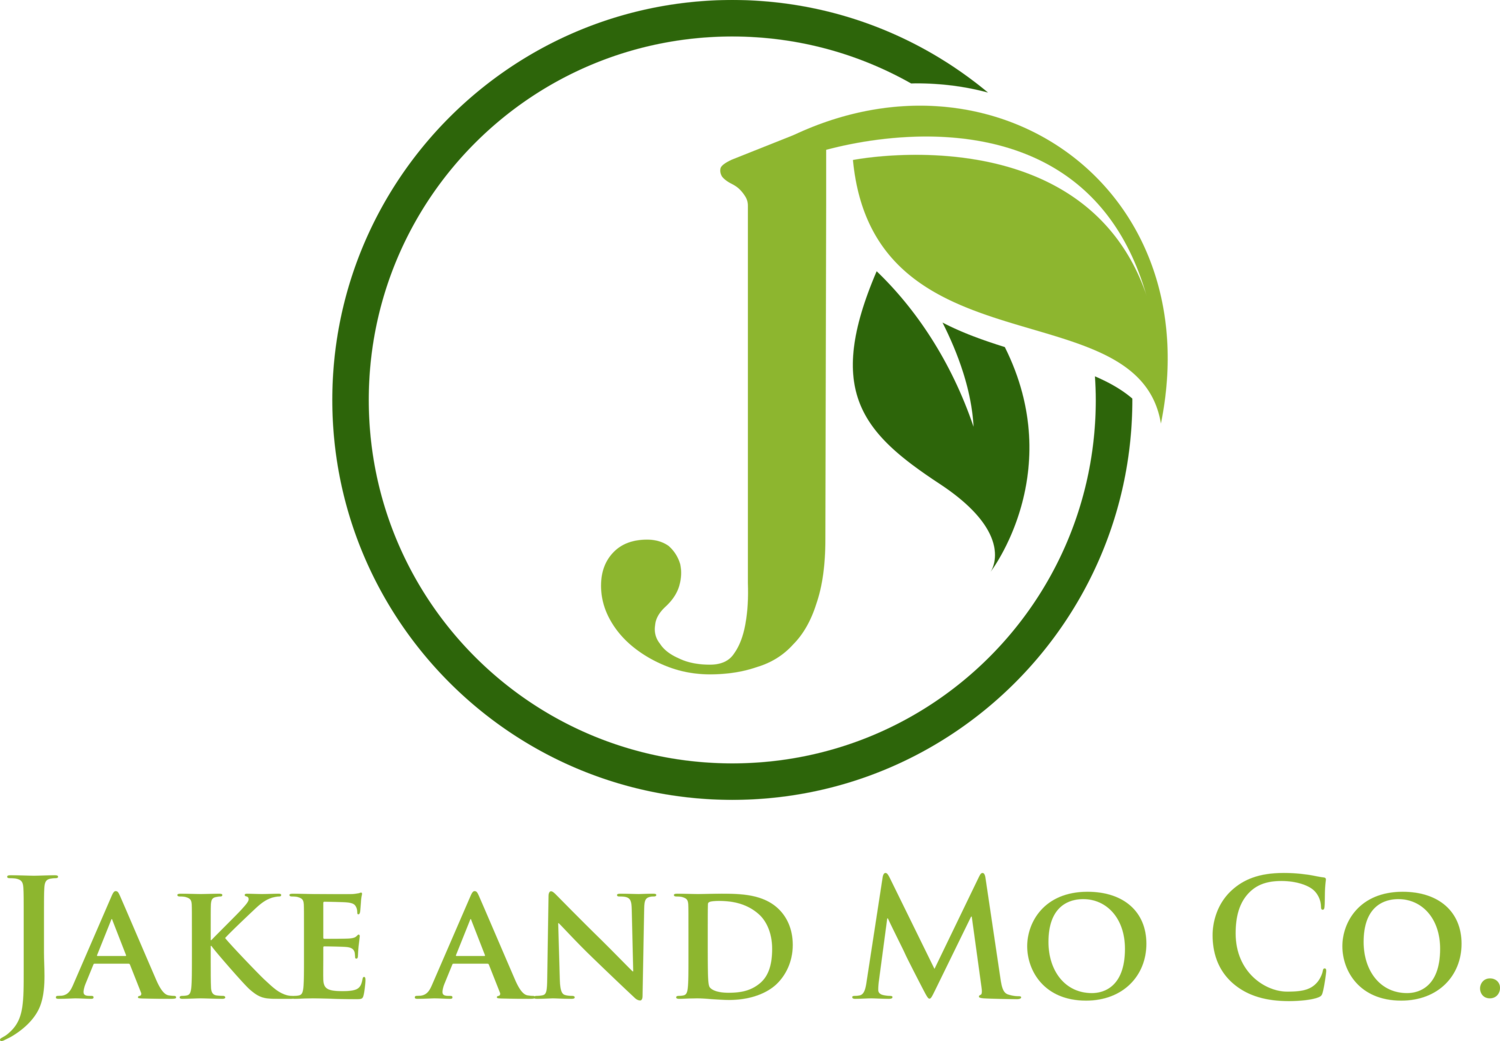 Jake and Mo Co.